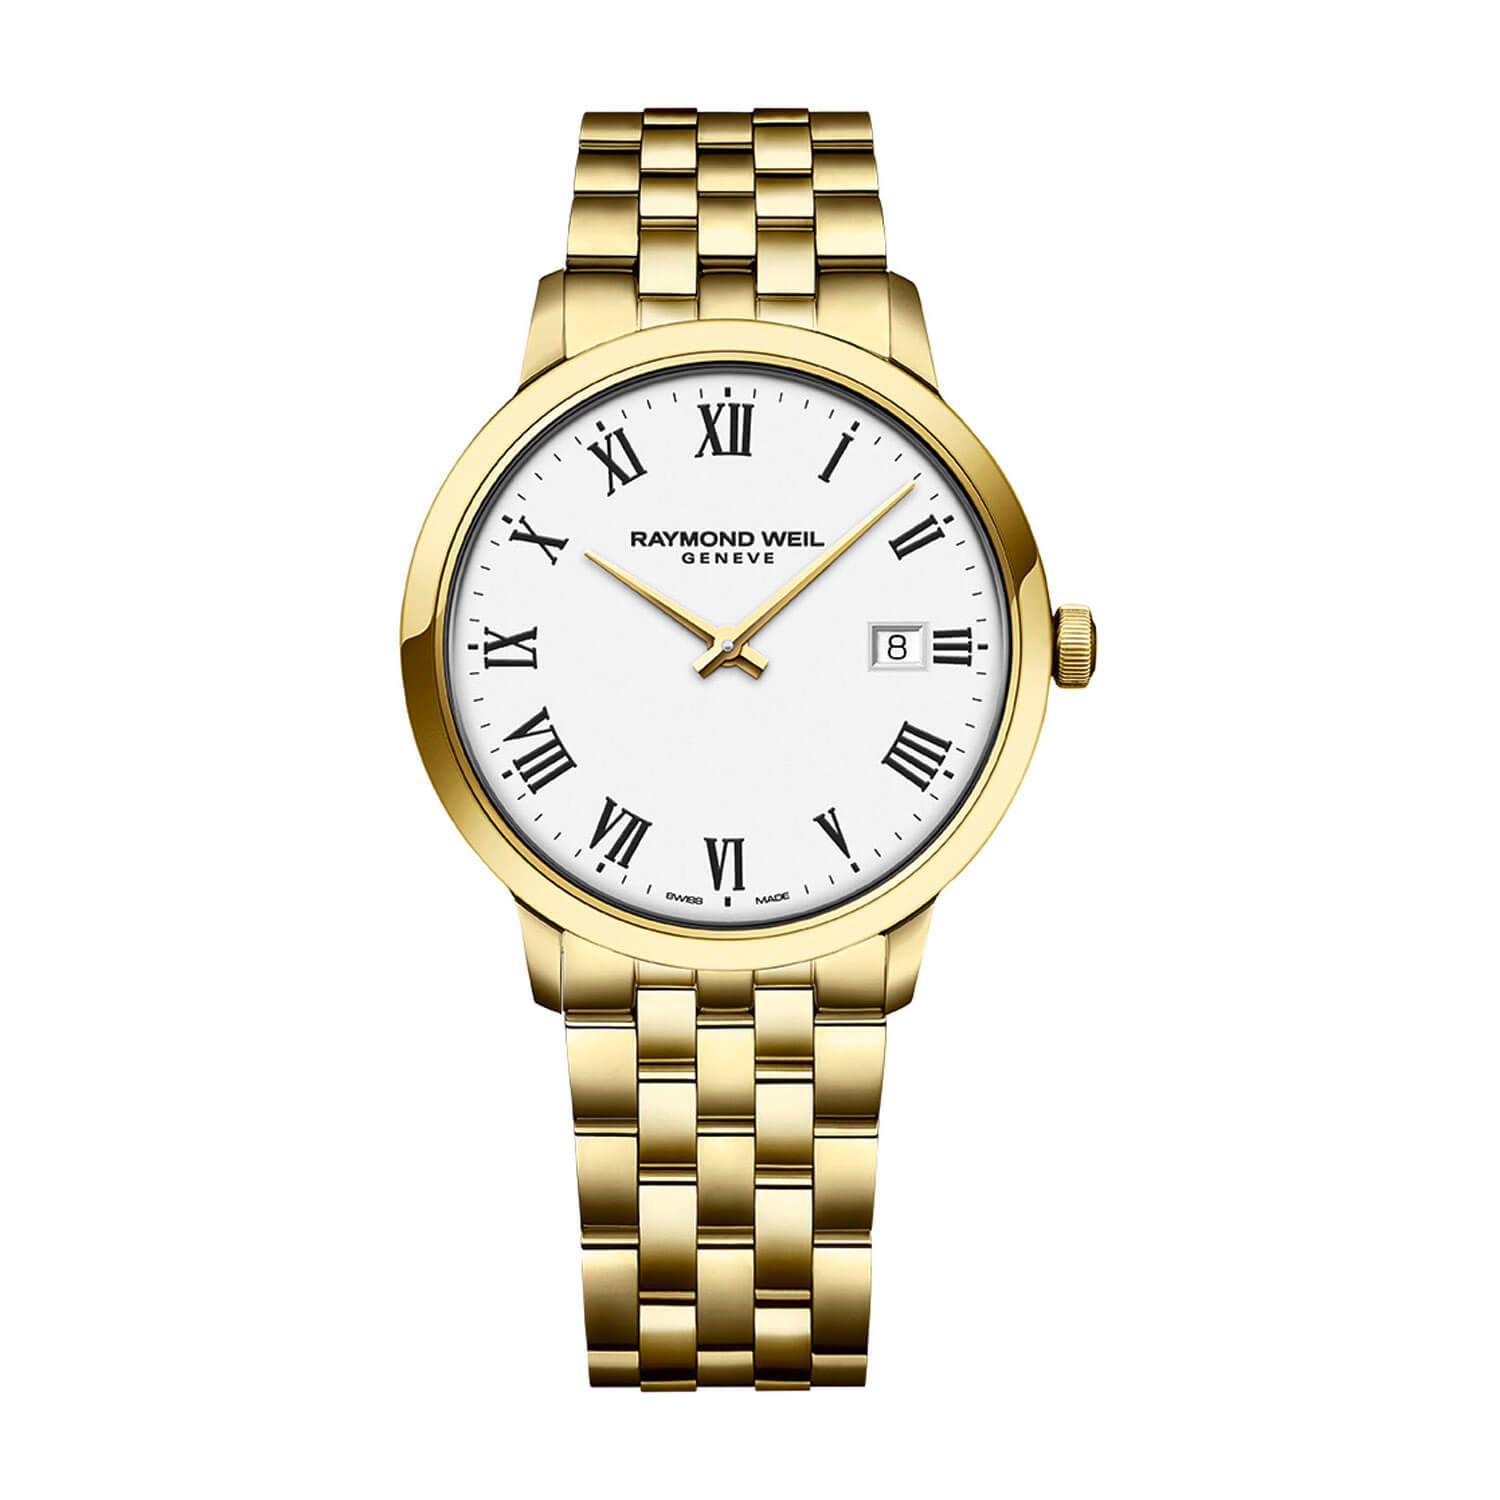 Raymond Weil Toccata White Dial & Yellow Gold PVD Bracelet Men's Watch